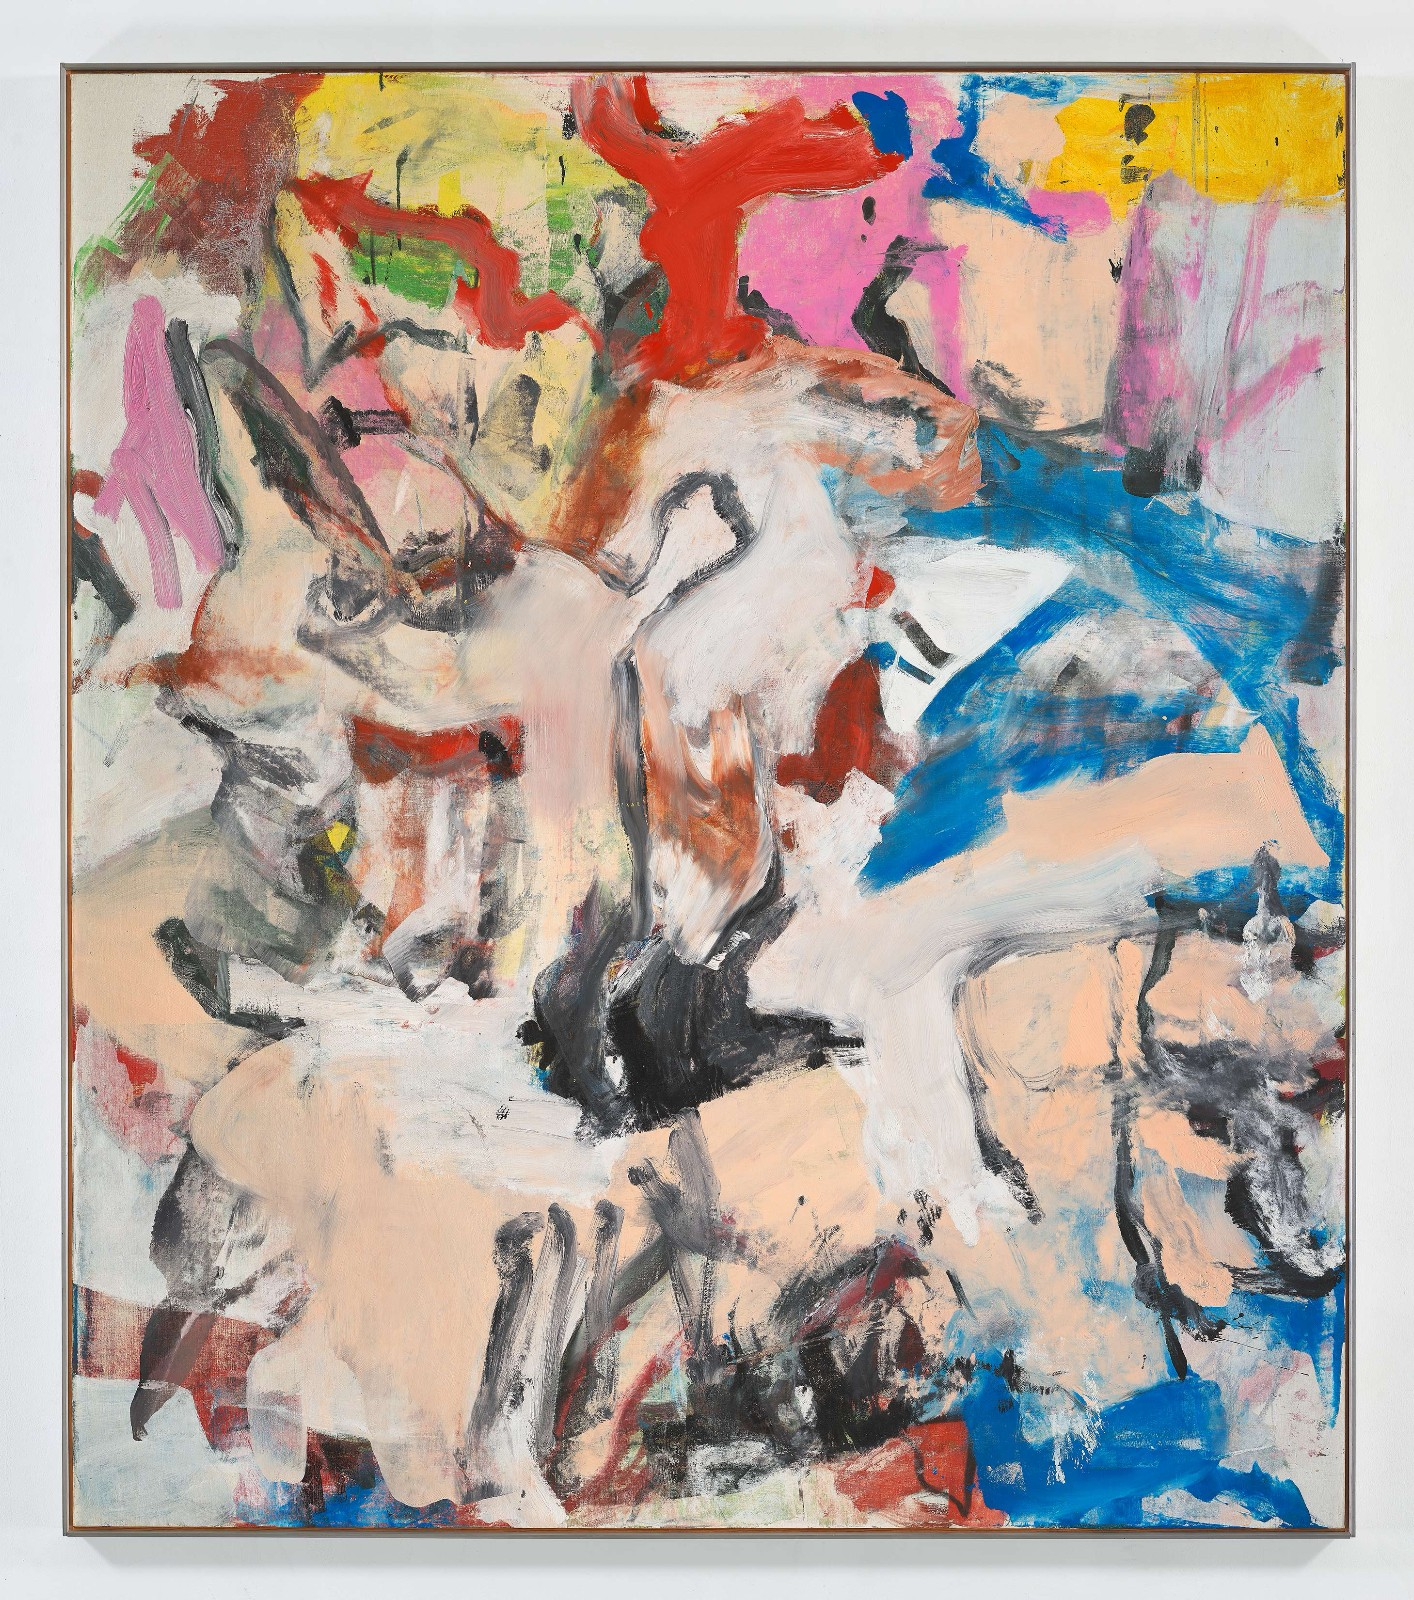 de Kooning_Untitled XII_1975 framed-2.jpg